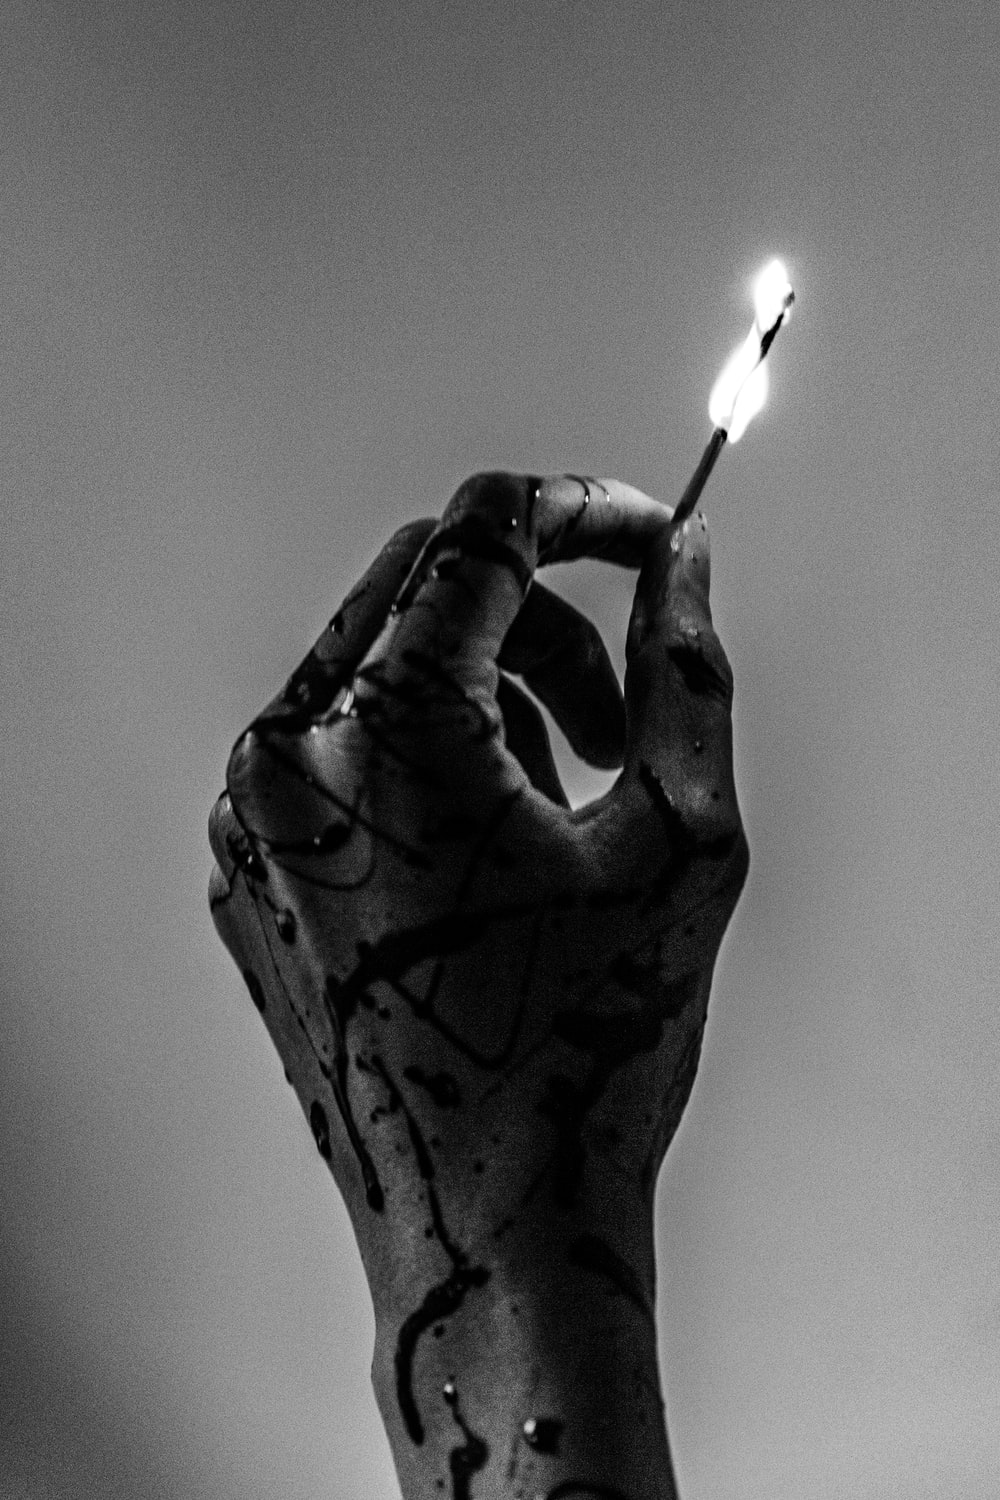 grayscale photo of person holding lighted match stick